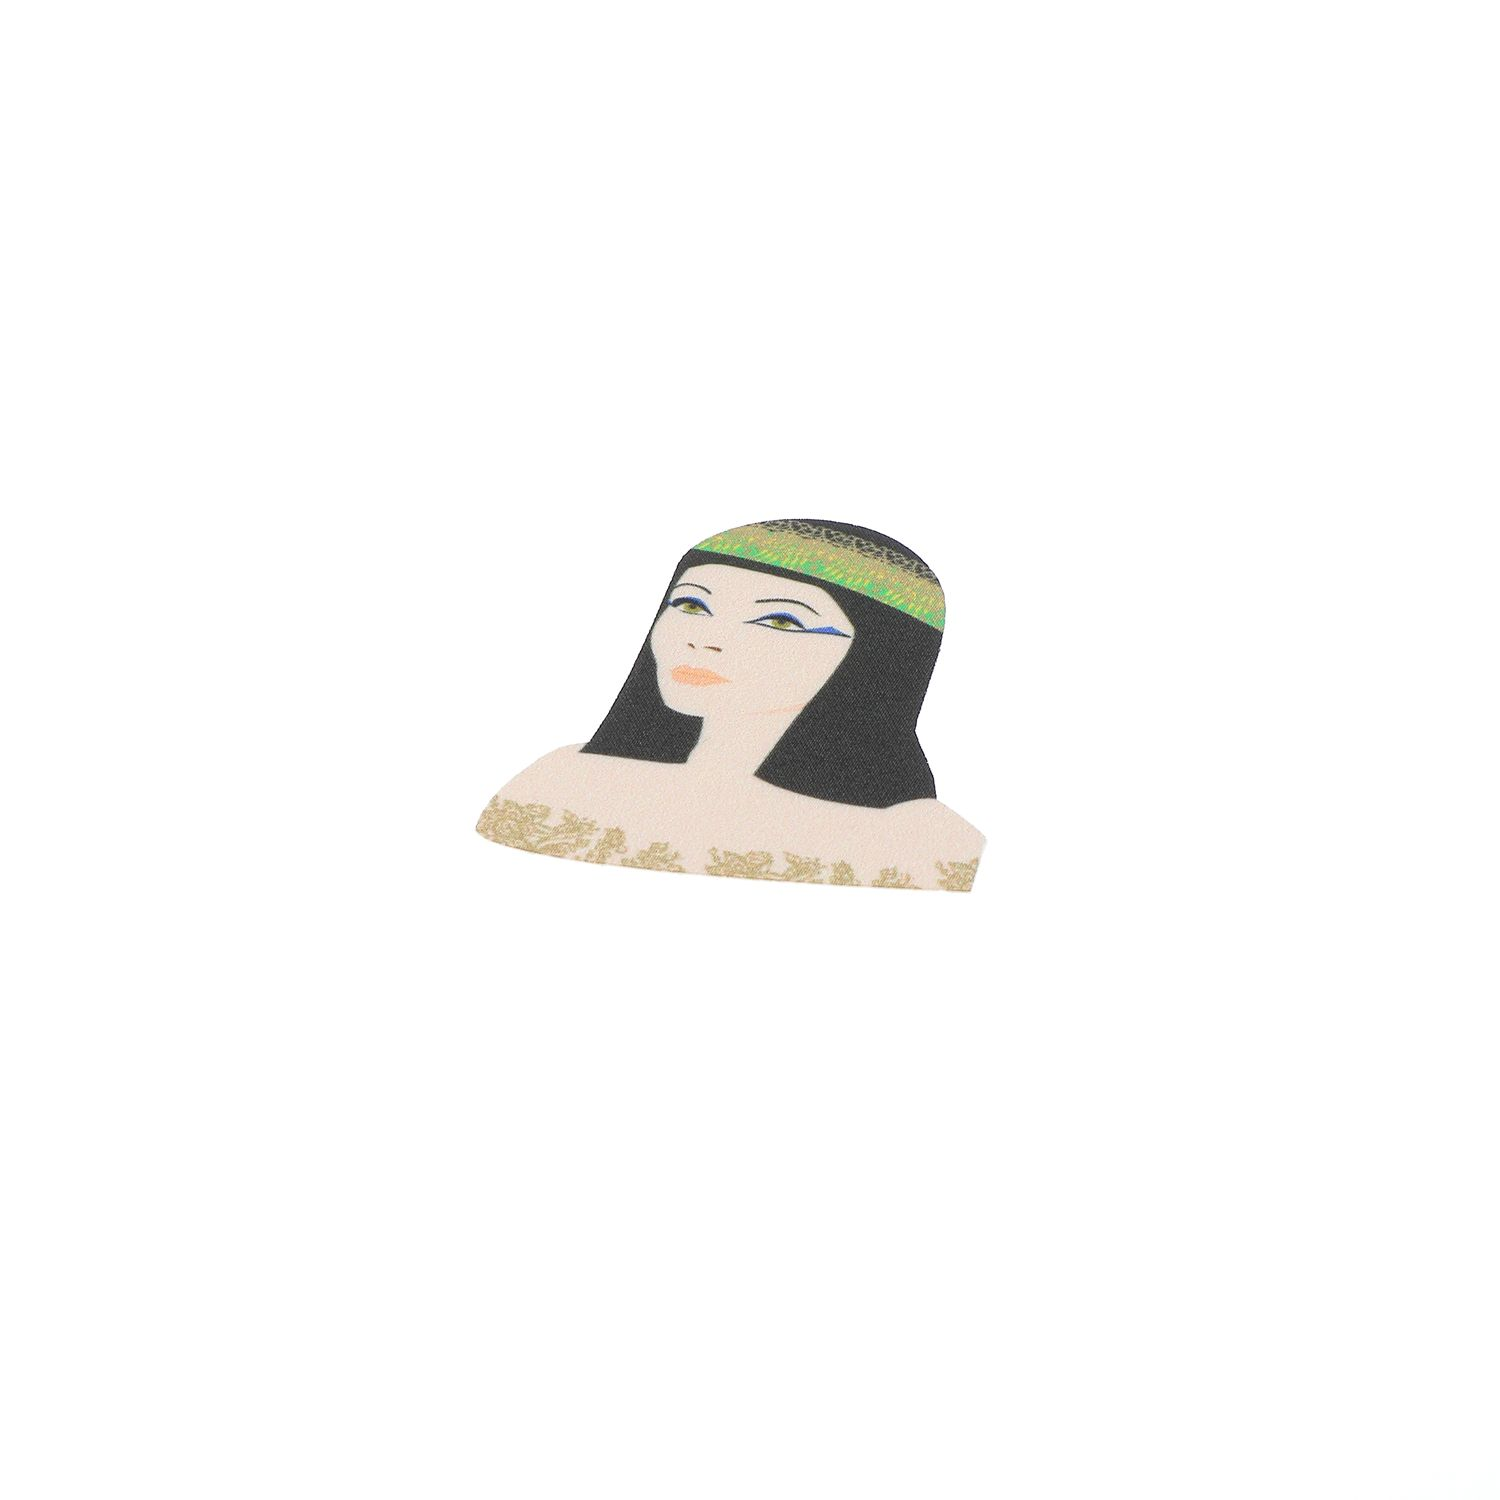 Patch thermocollant motif femme egyptienne